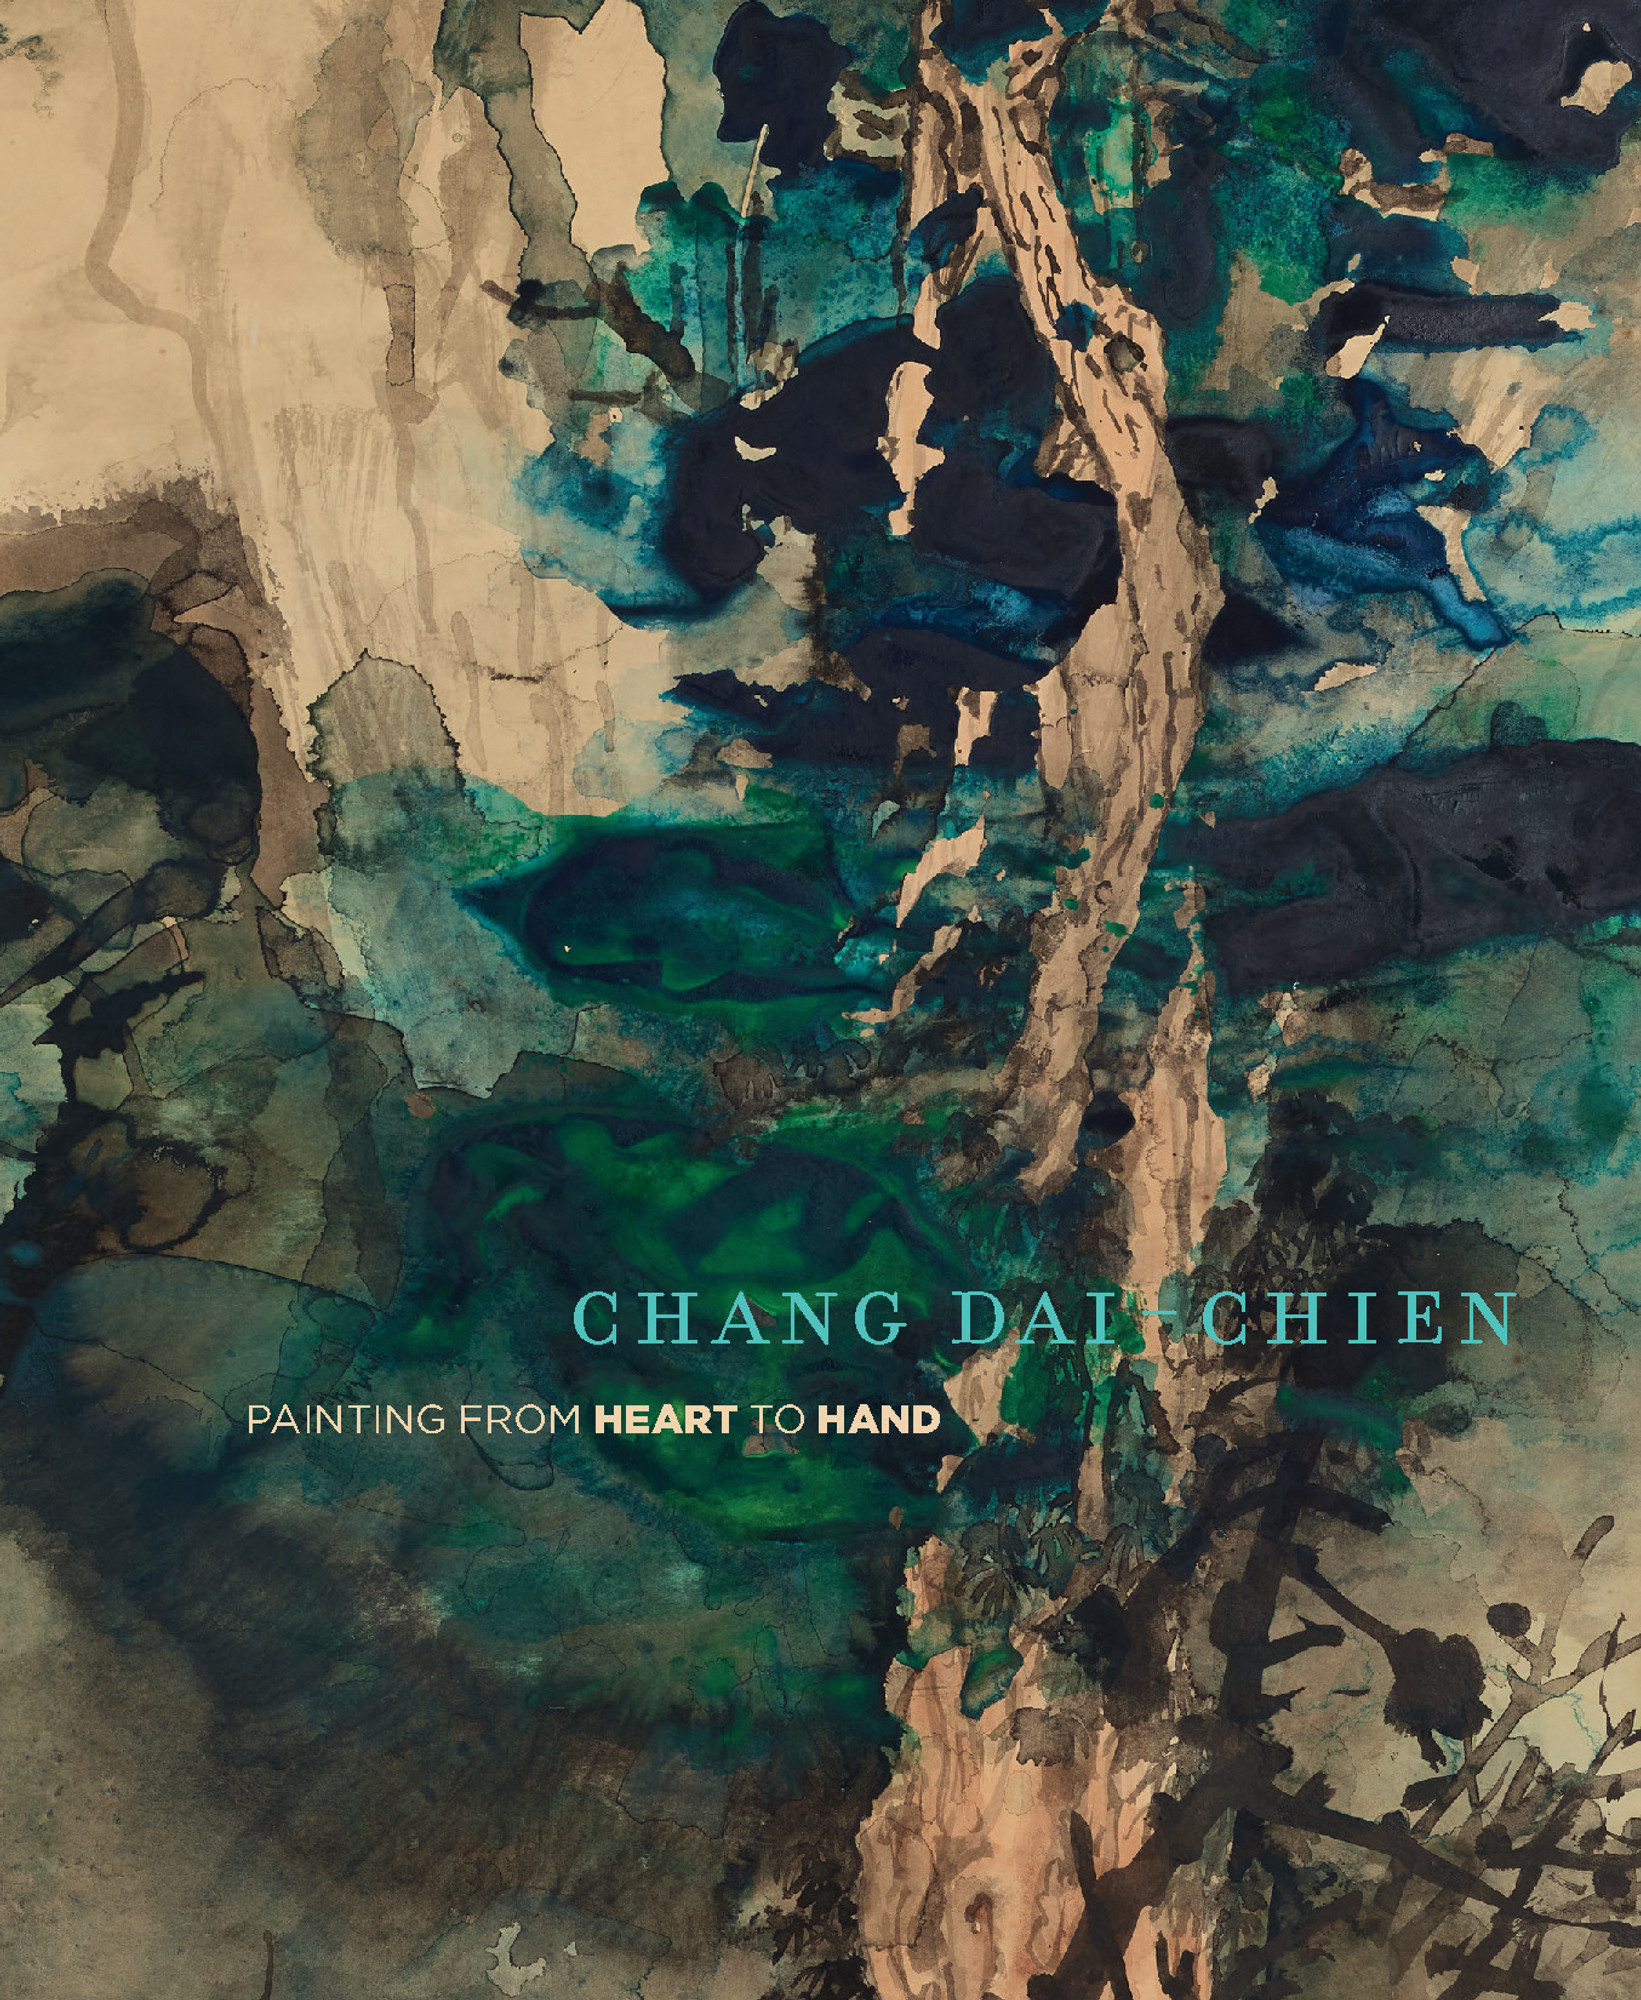 Chang Dai Chien Painting From Heart To Hand